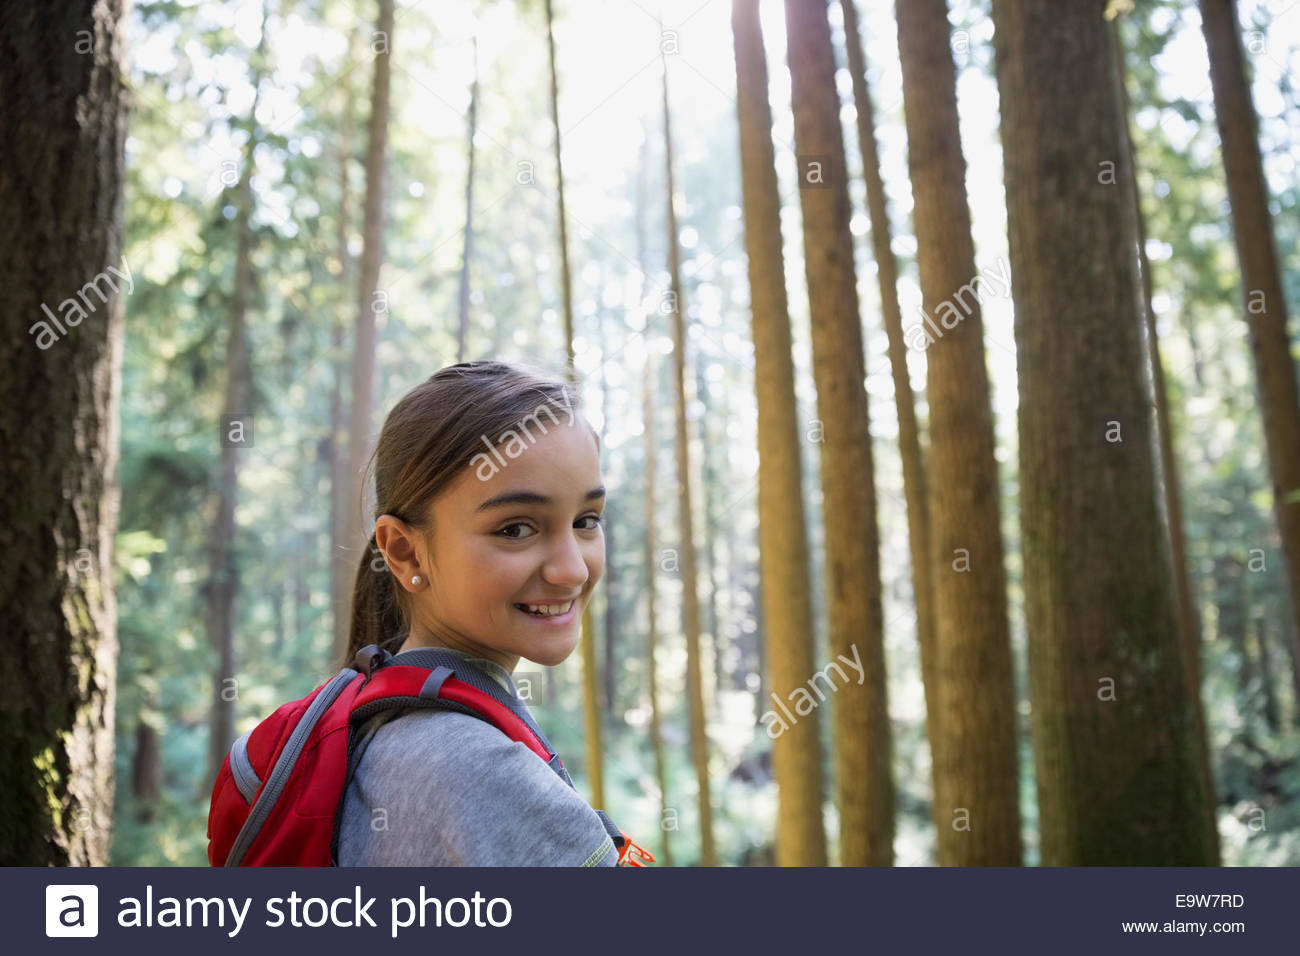 Portrait of smiling girl in woods - Stock Image